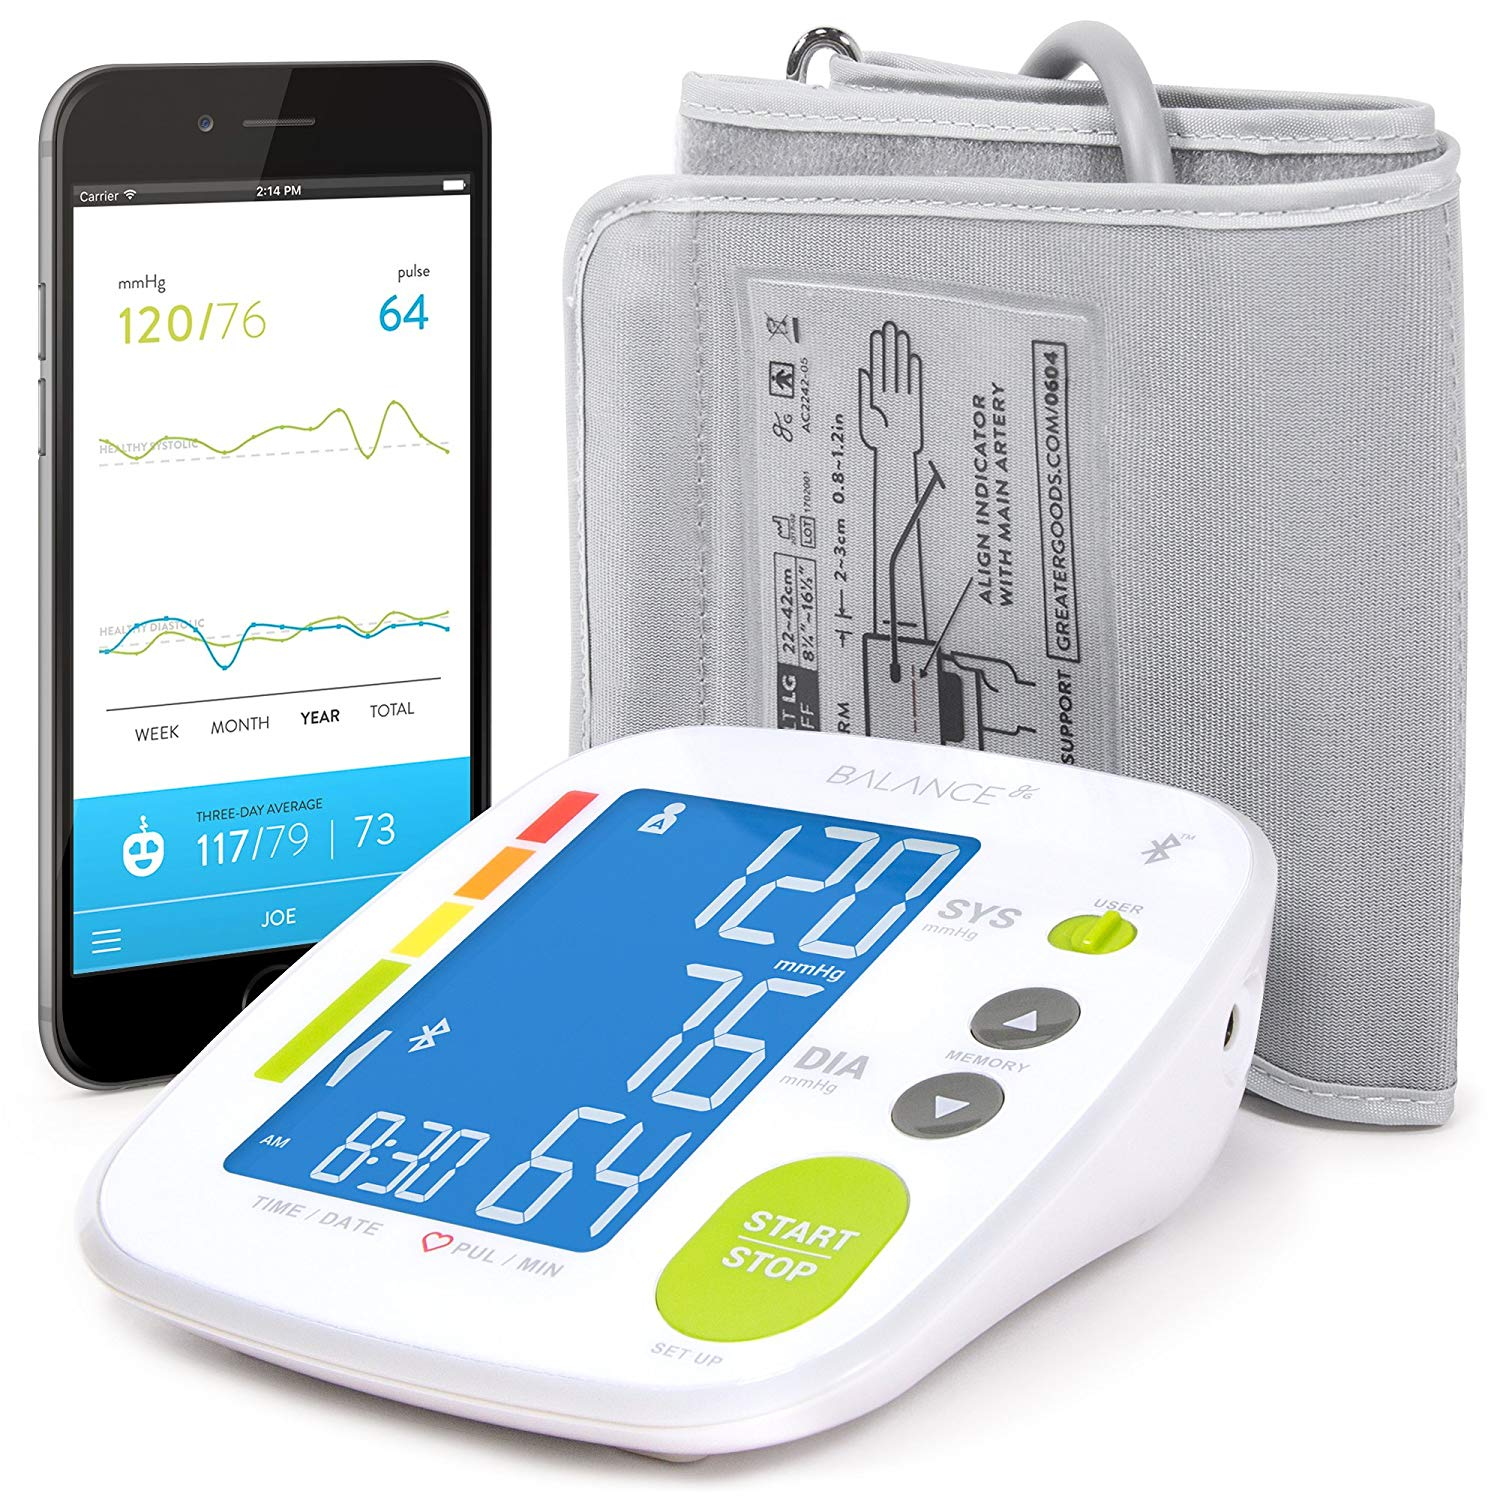 Our #4 Rated - Greater Goods Blood Pressure Monitor